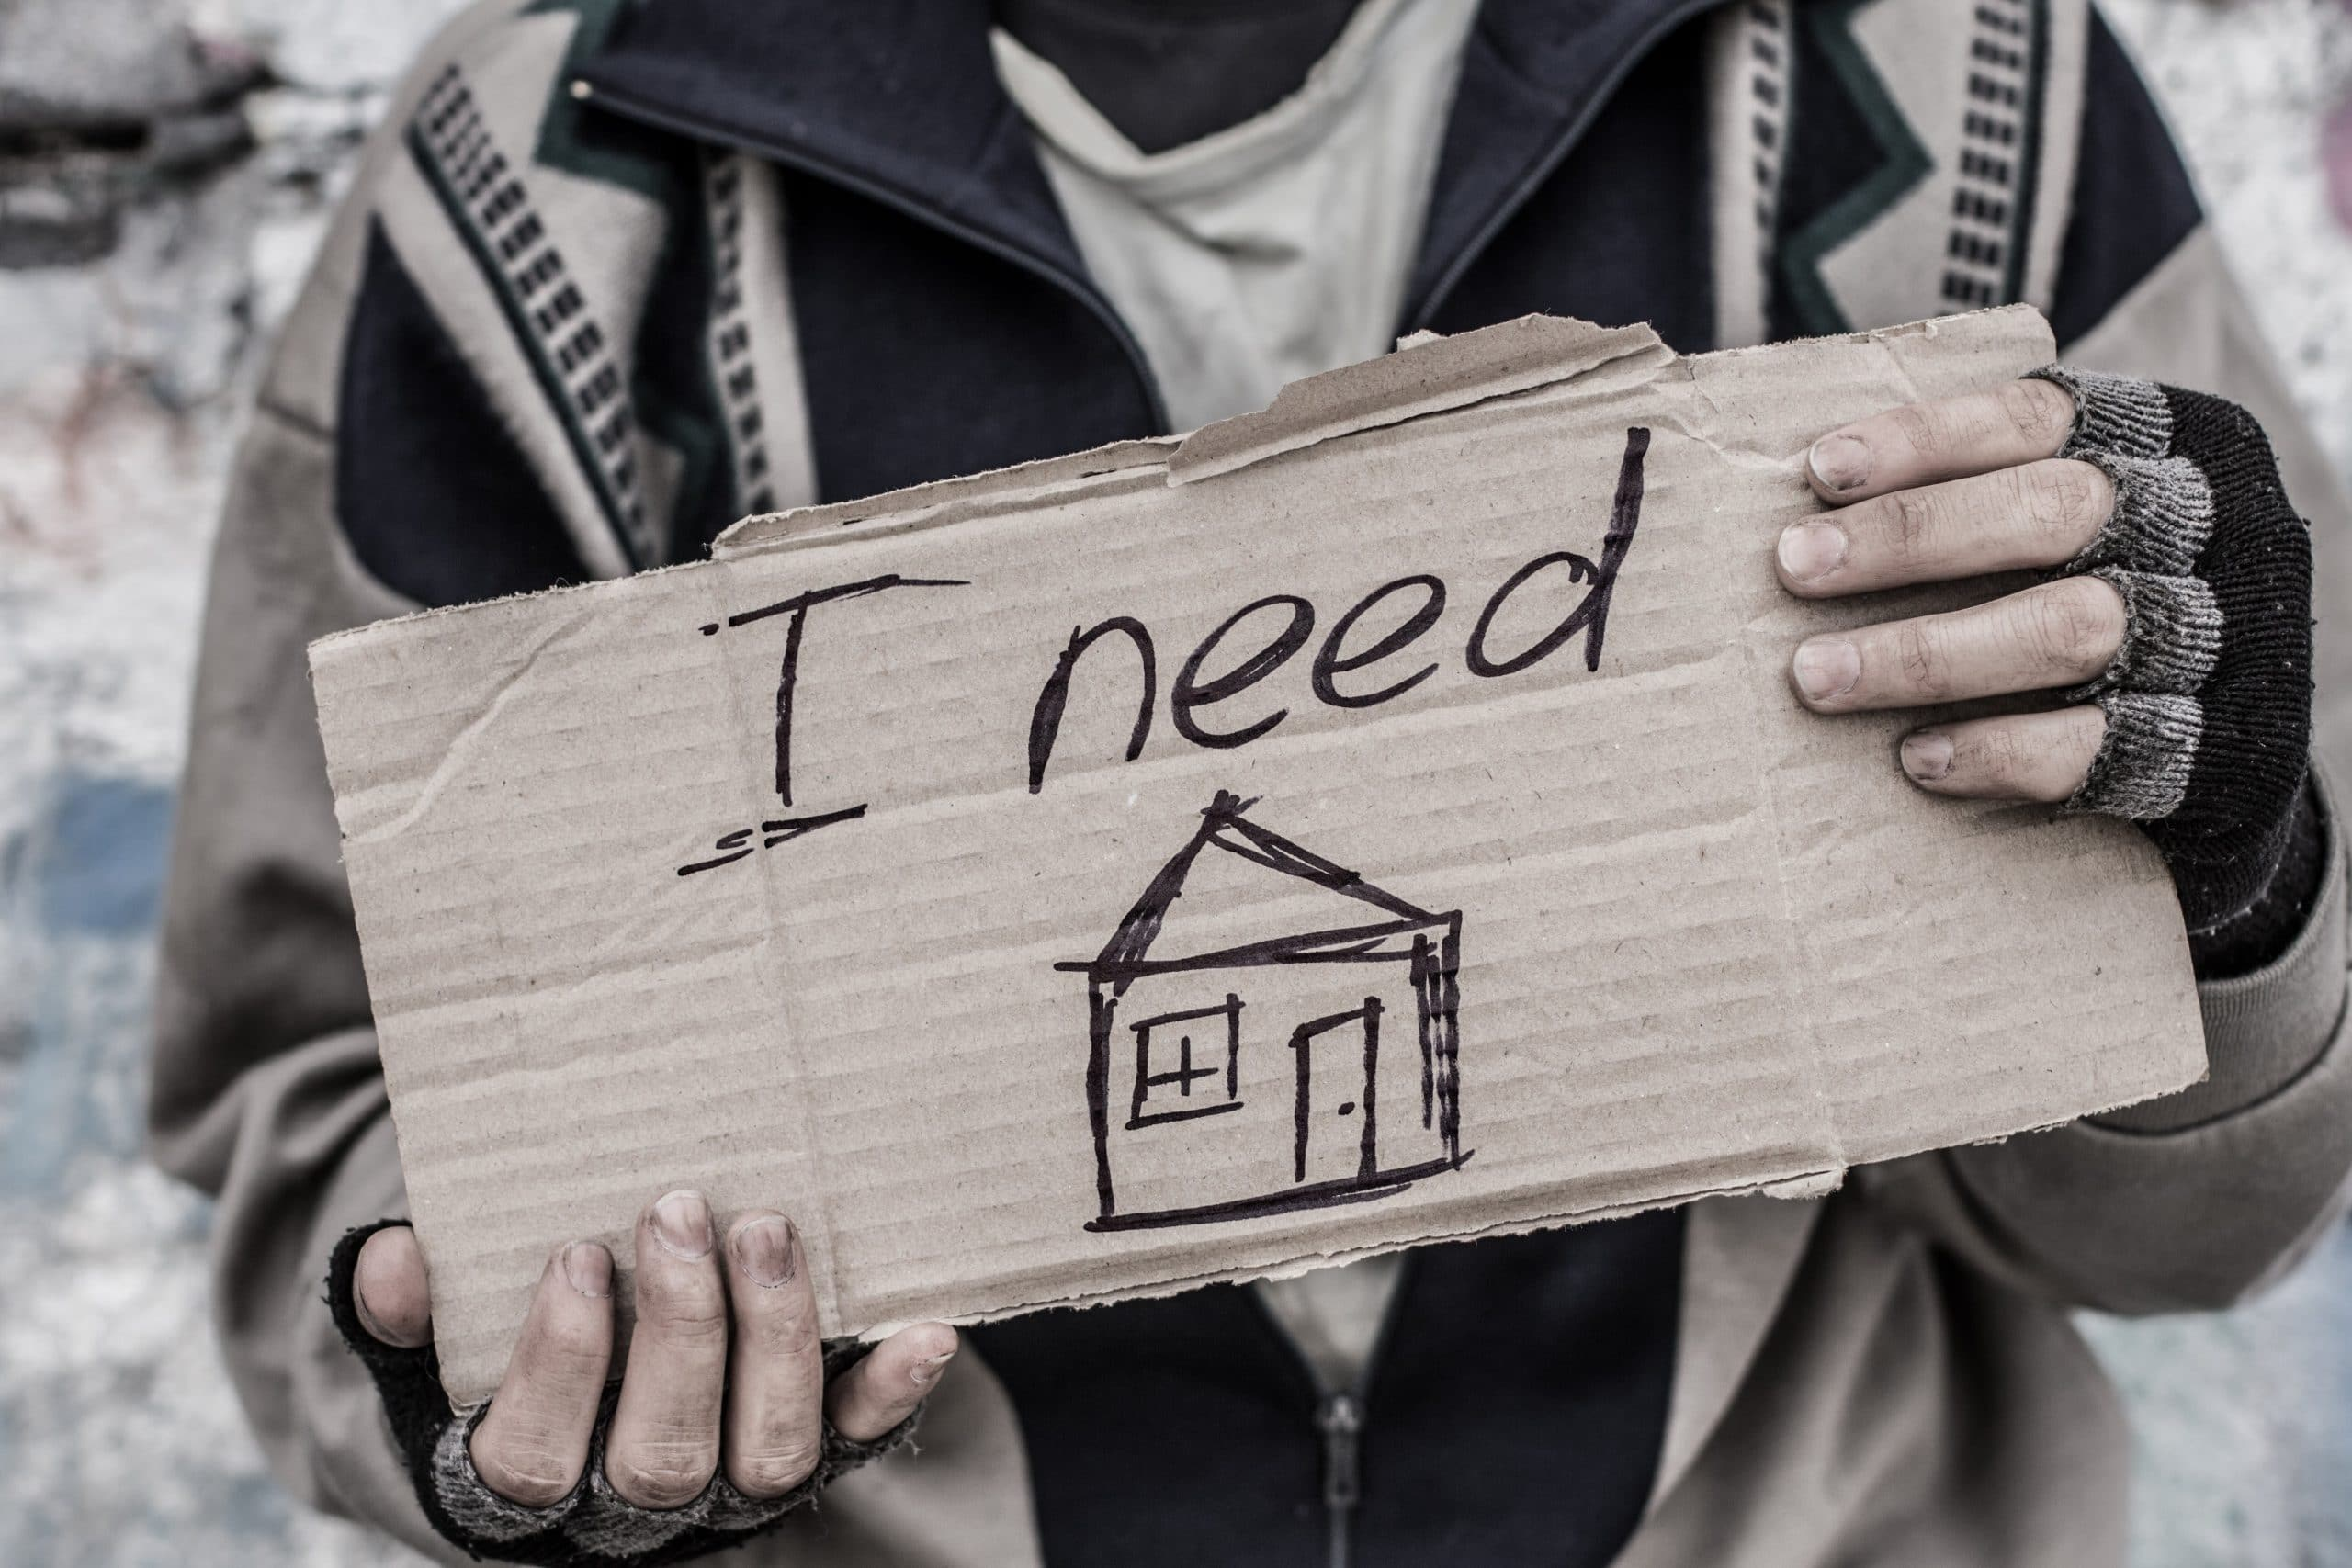 Homeless holding a sign I need Home